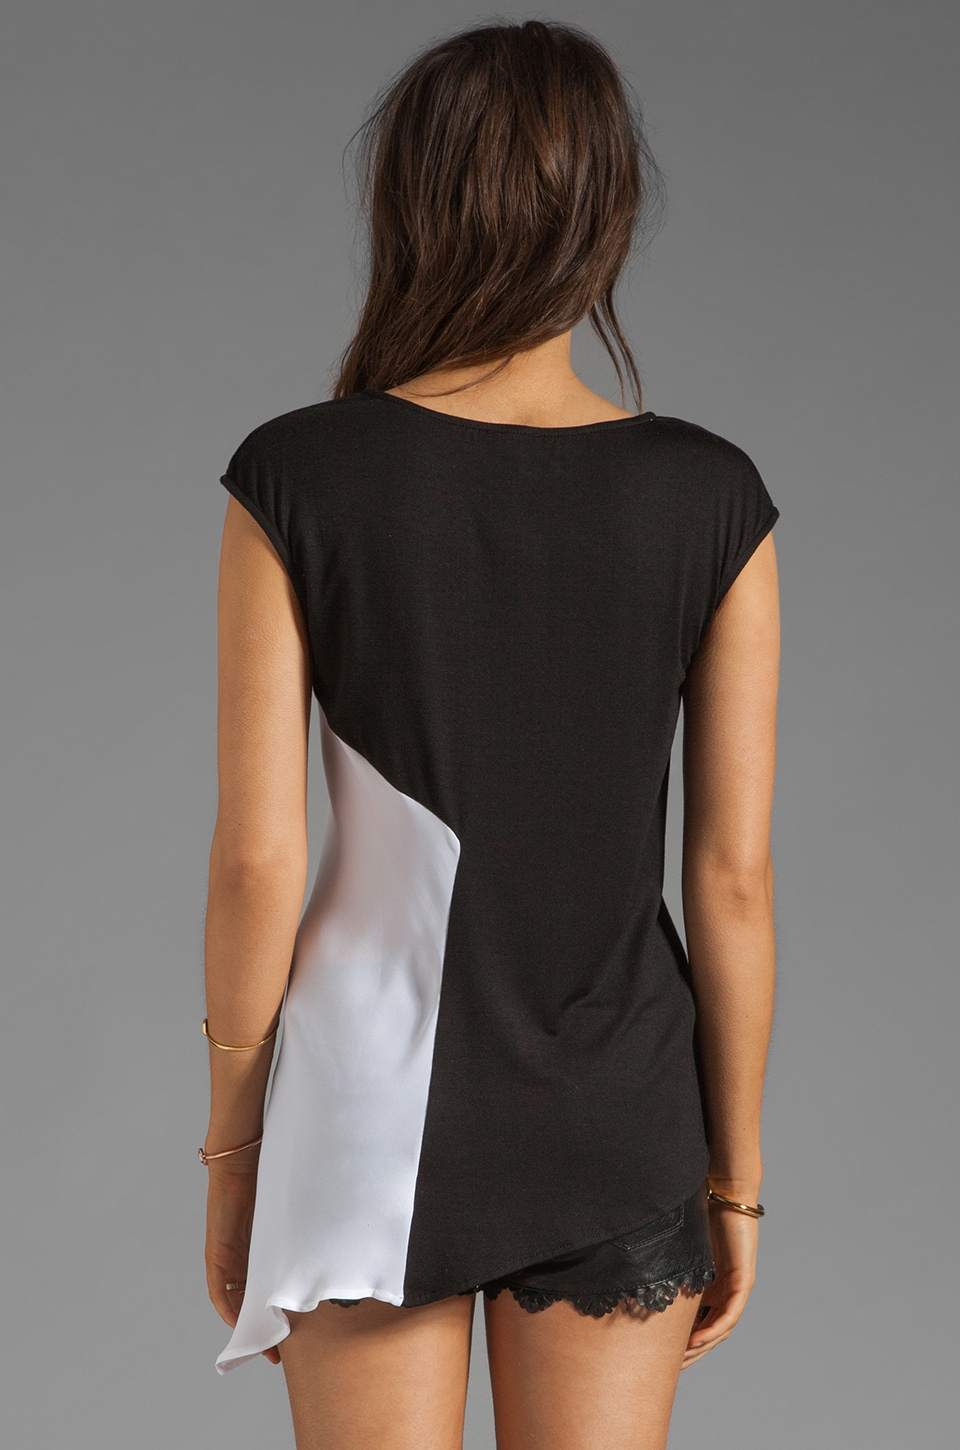 Heather Asymmetrical Tee in Black/White